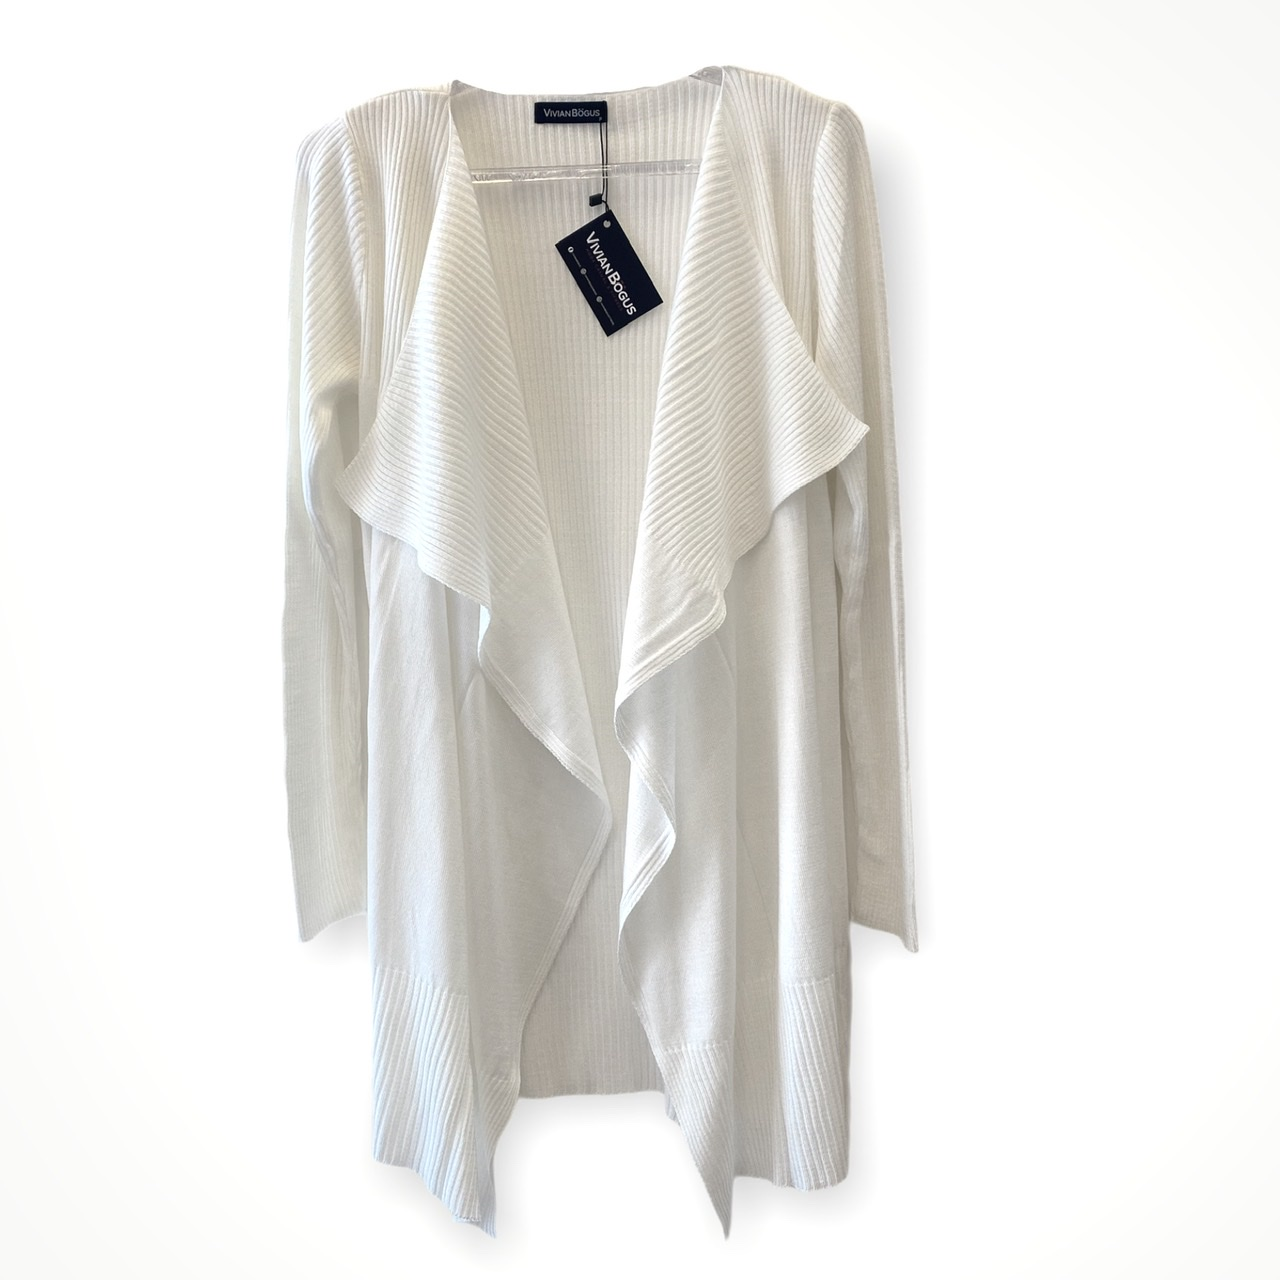 Casaco Marcela off white tricot